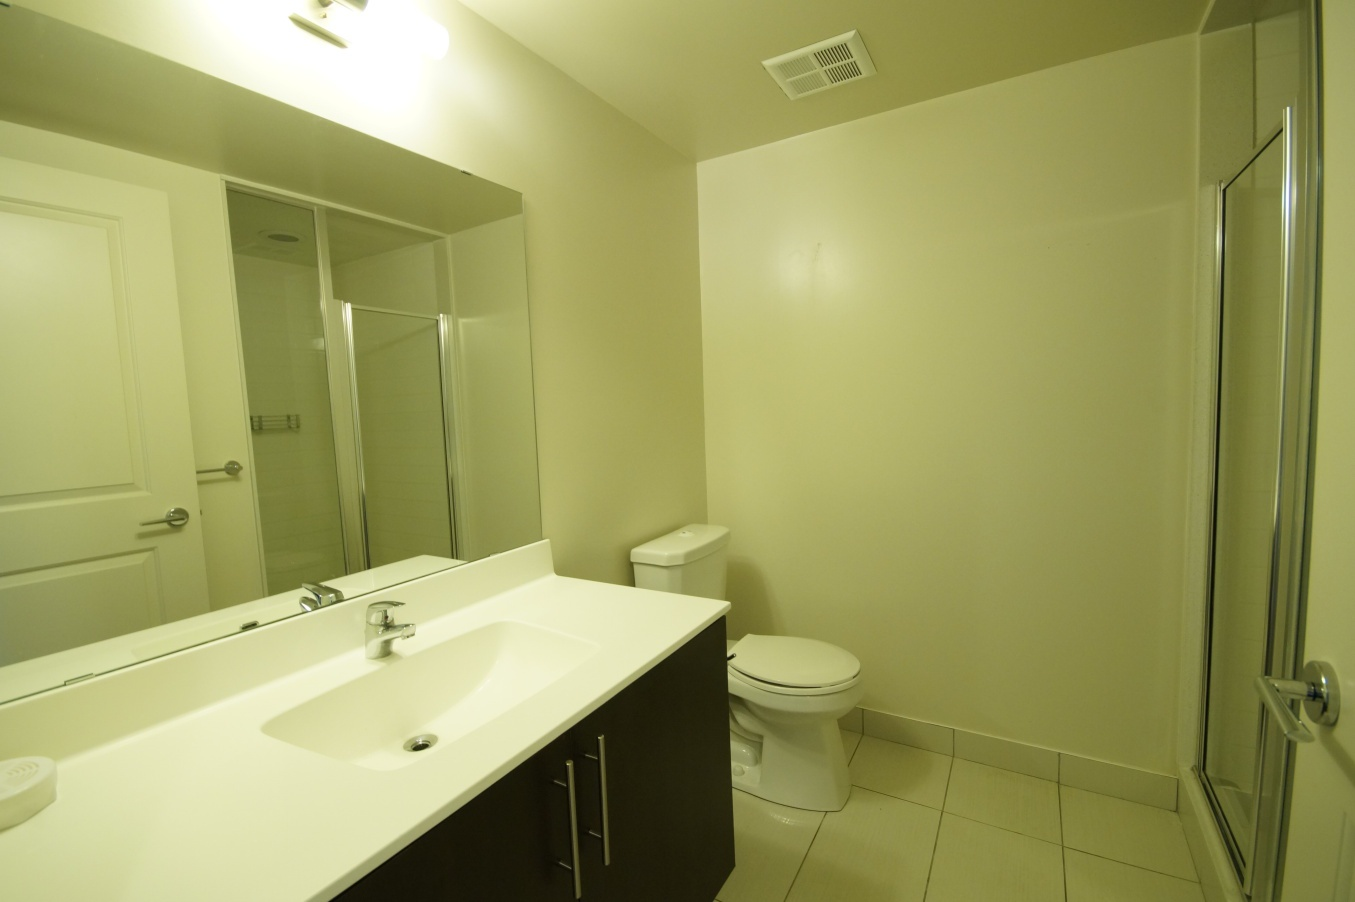 Condo for rent at 8130 Birchmount Rd, Markham, ON. This is the bathroom with tile floor.